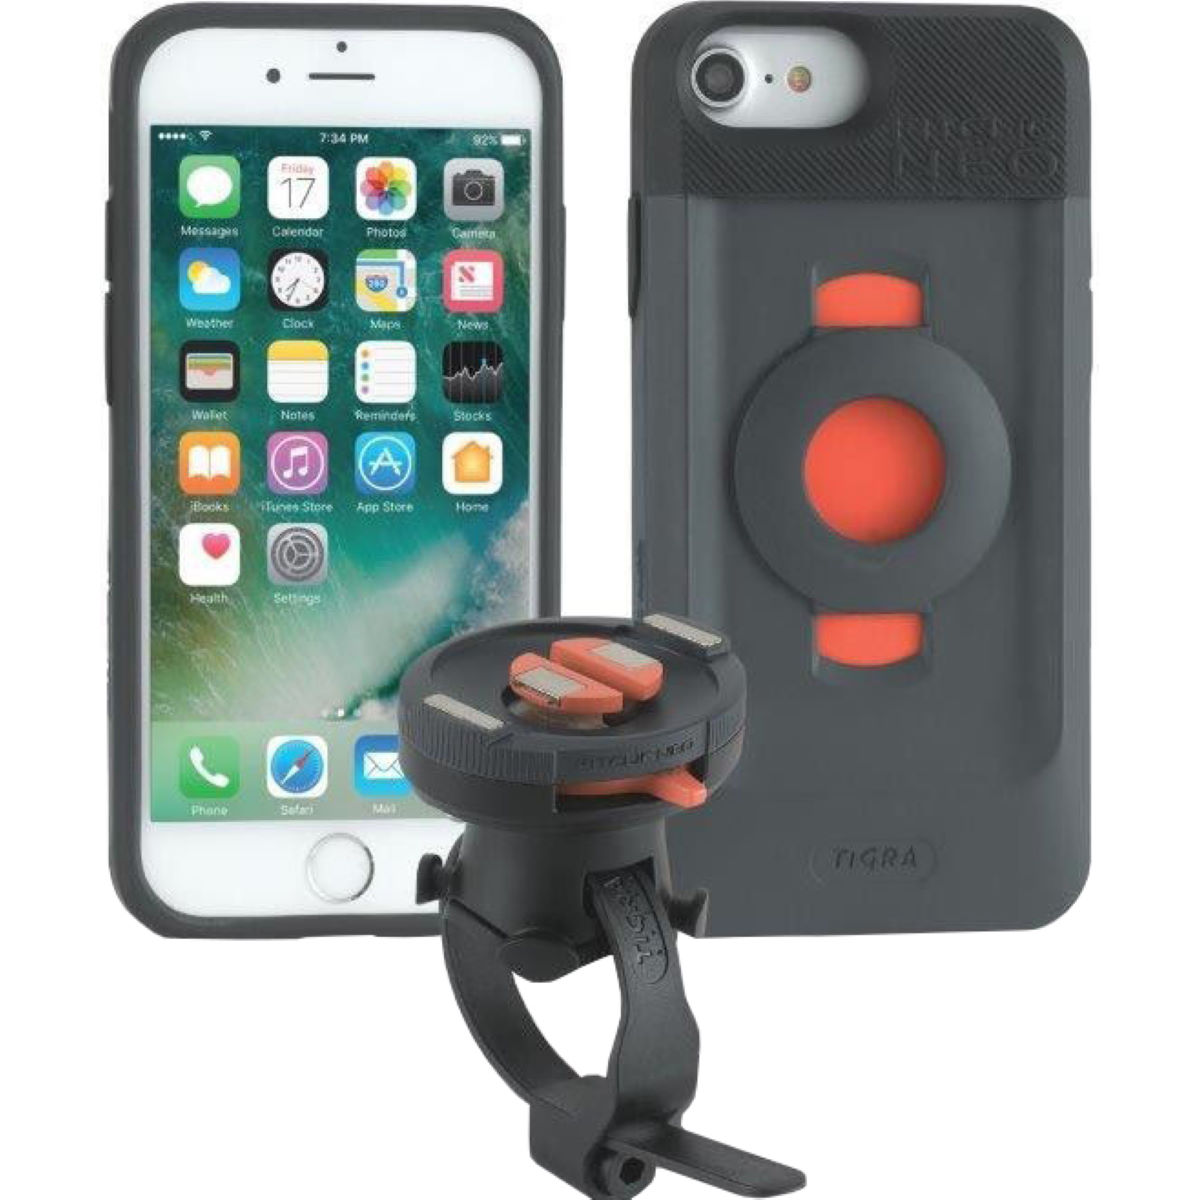 Tigra Sport FitClic Neo Bike Kit for iPhone 6/6s/7/8 - Fundas para el móvil